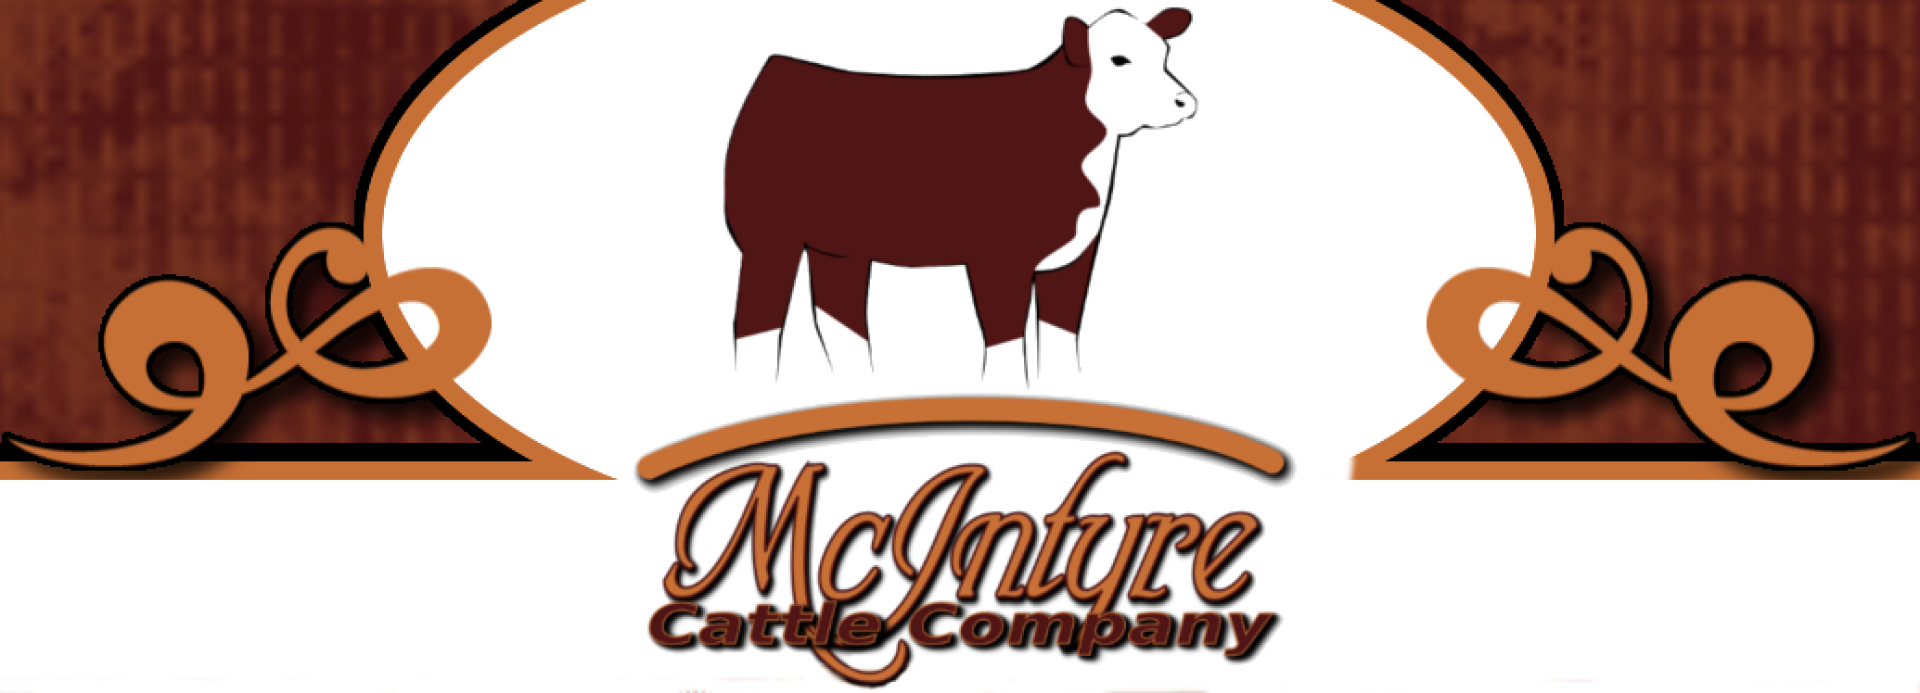 McIntyre Cattle Company